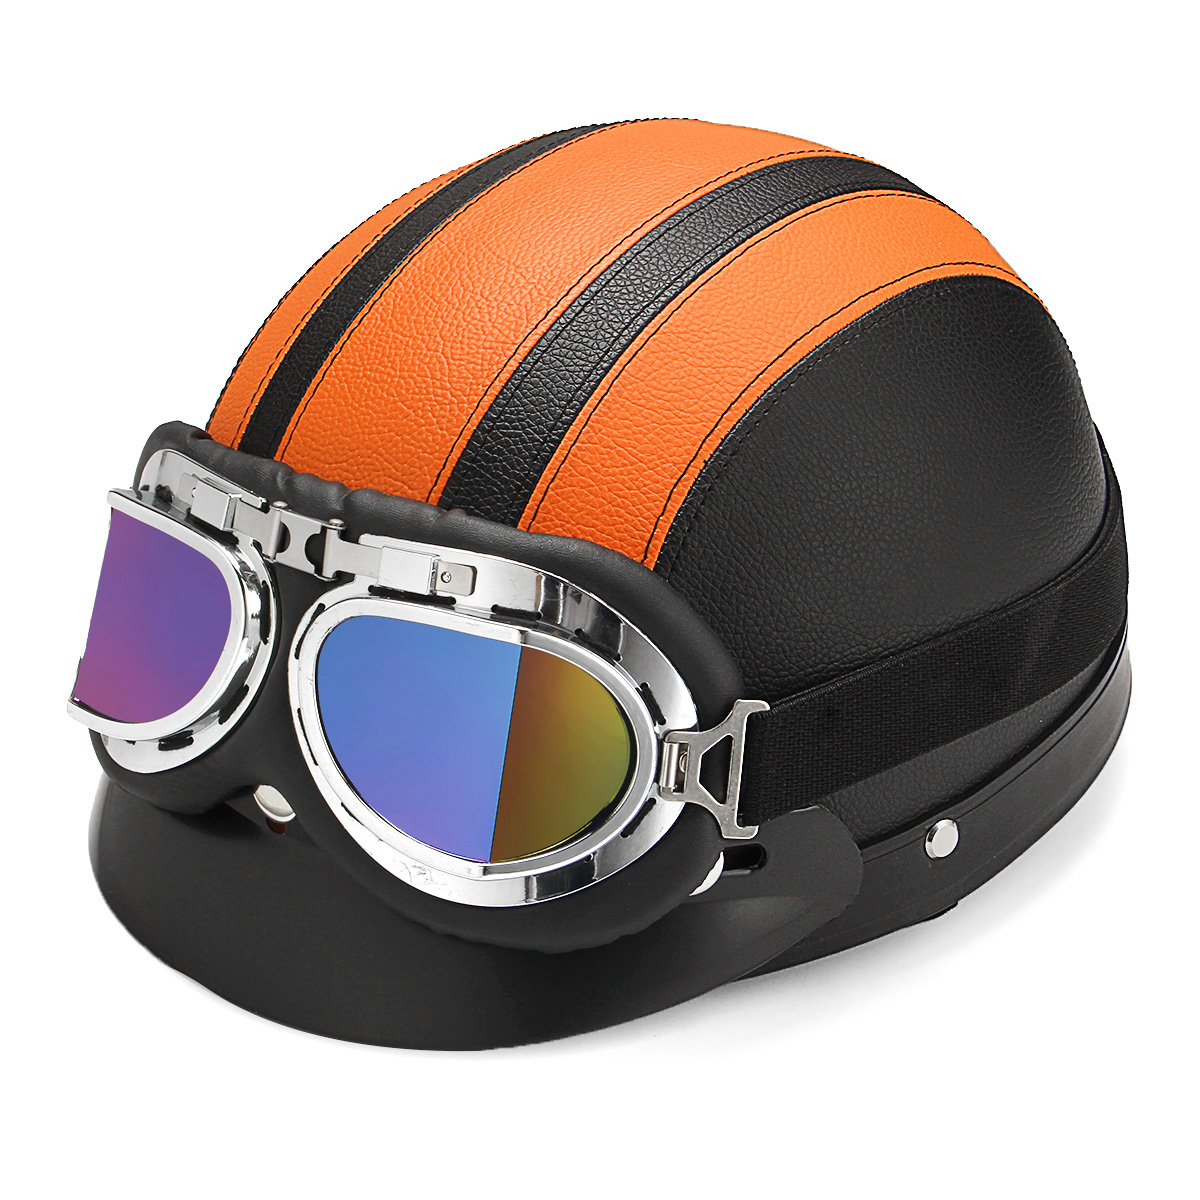 Universal ABS Safety Motorcycle Helmet Half Open Face Helmet Biker Scooter w/ UV Goggles Retro 4-Colors